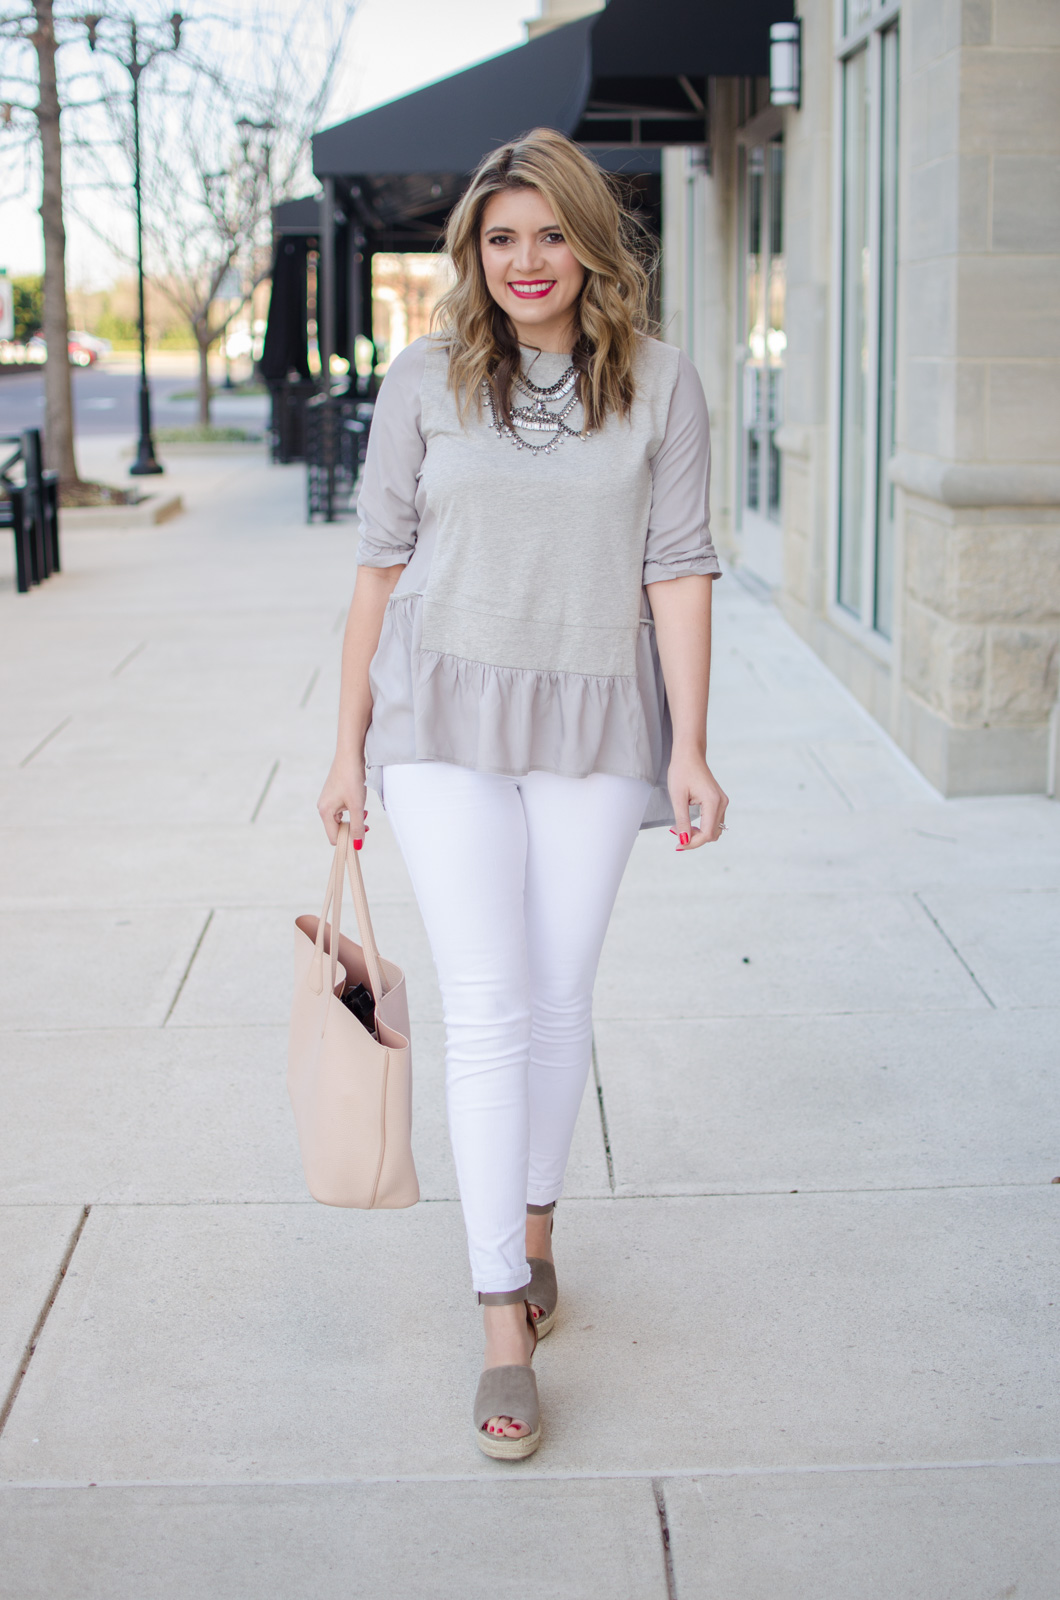 early spring outfit idea - gray ruffle tee with white jeans outfit. Click through for more cute Spring outfits or to shop this look! bylaurenm.com